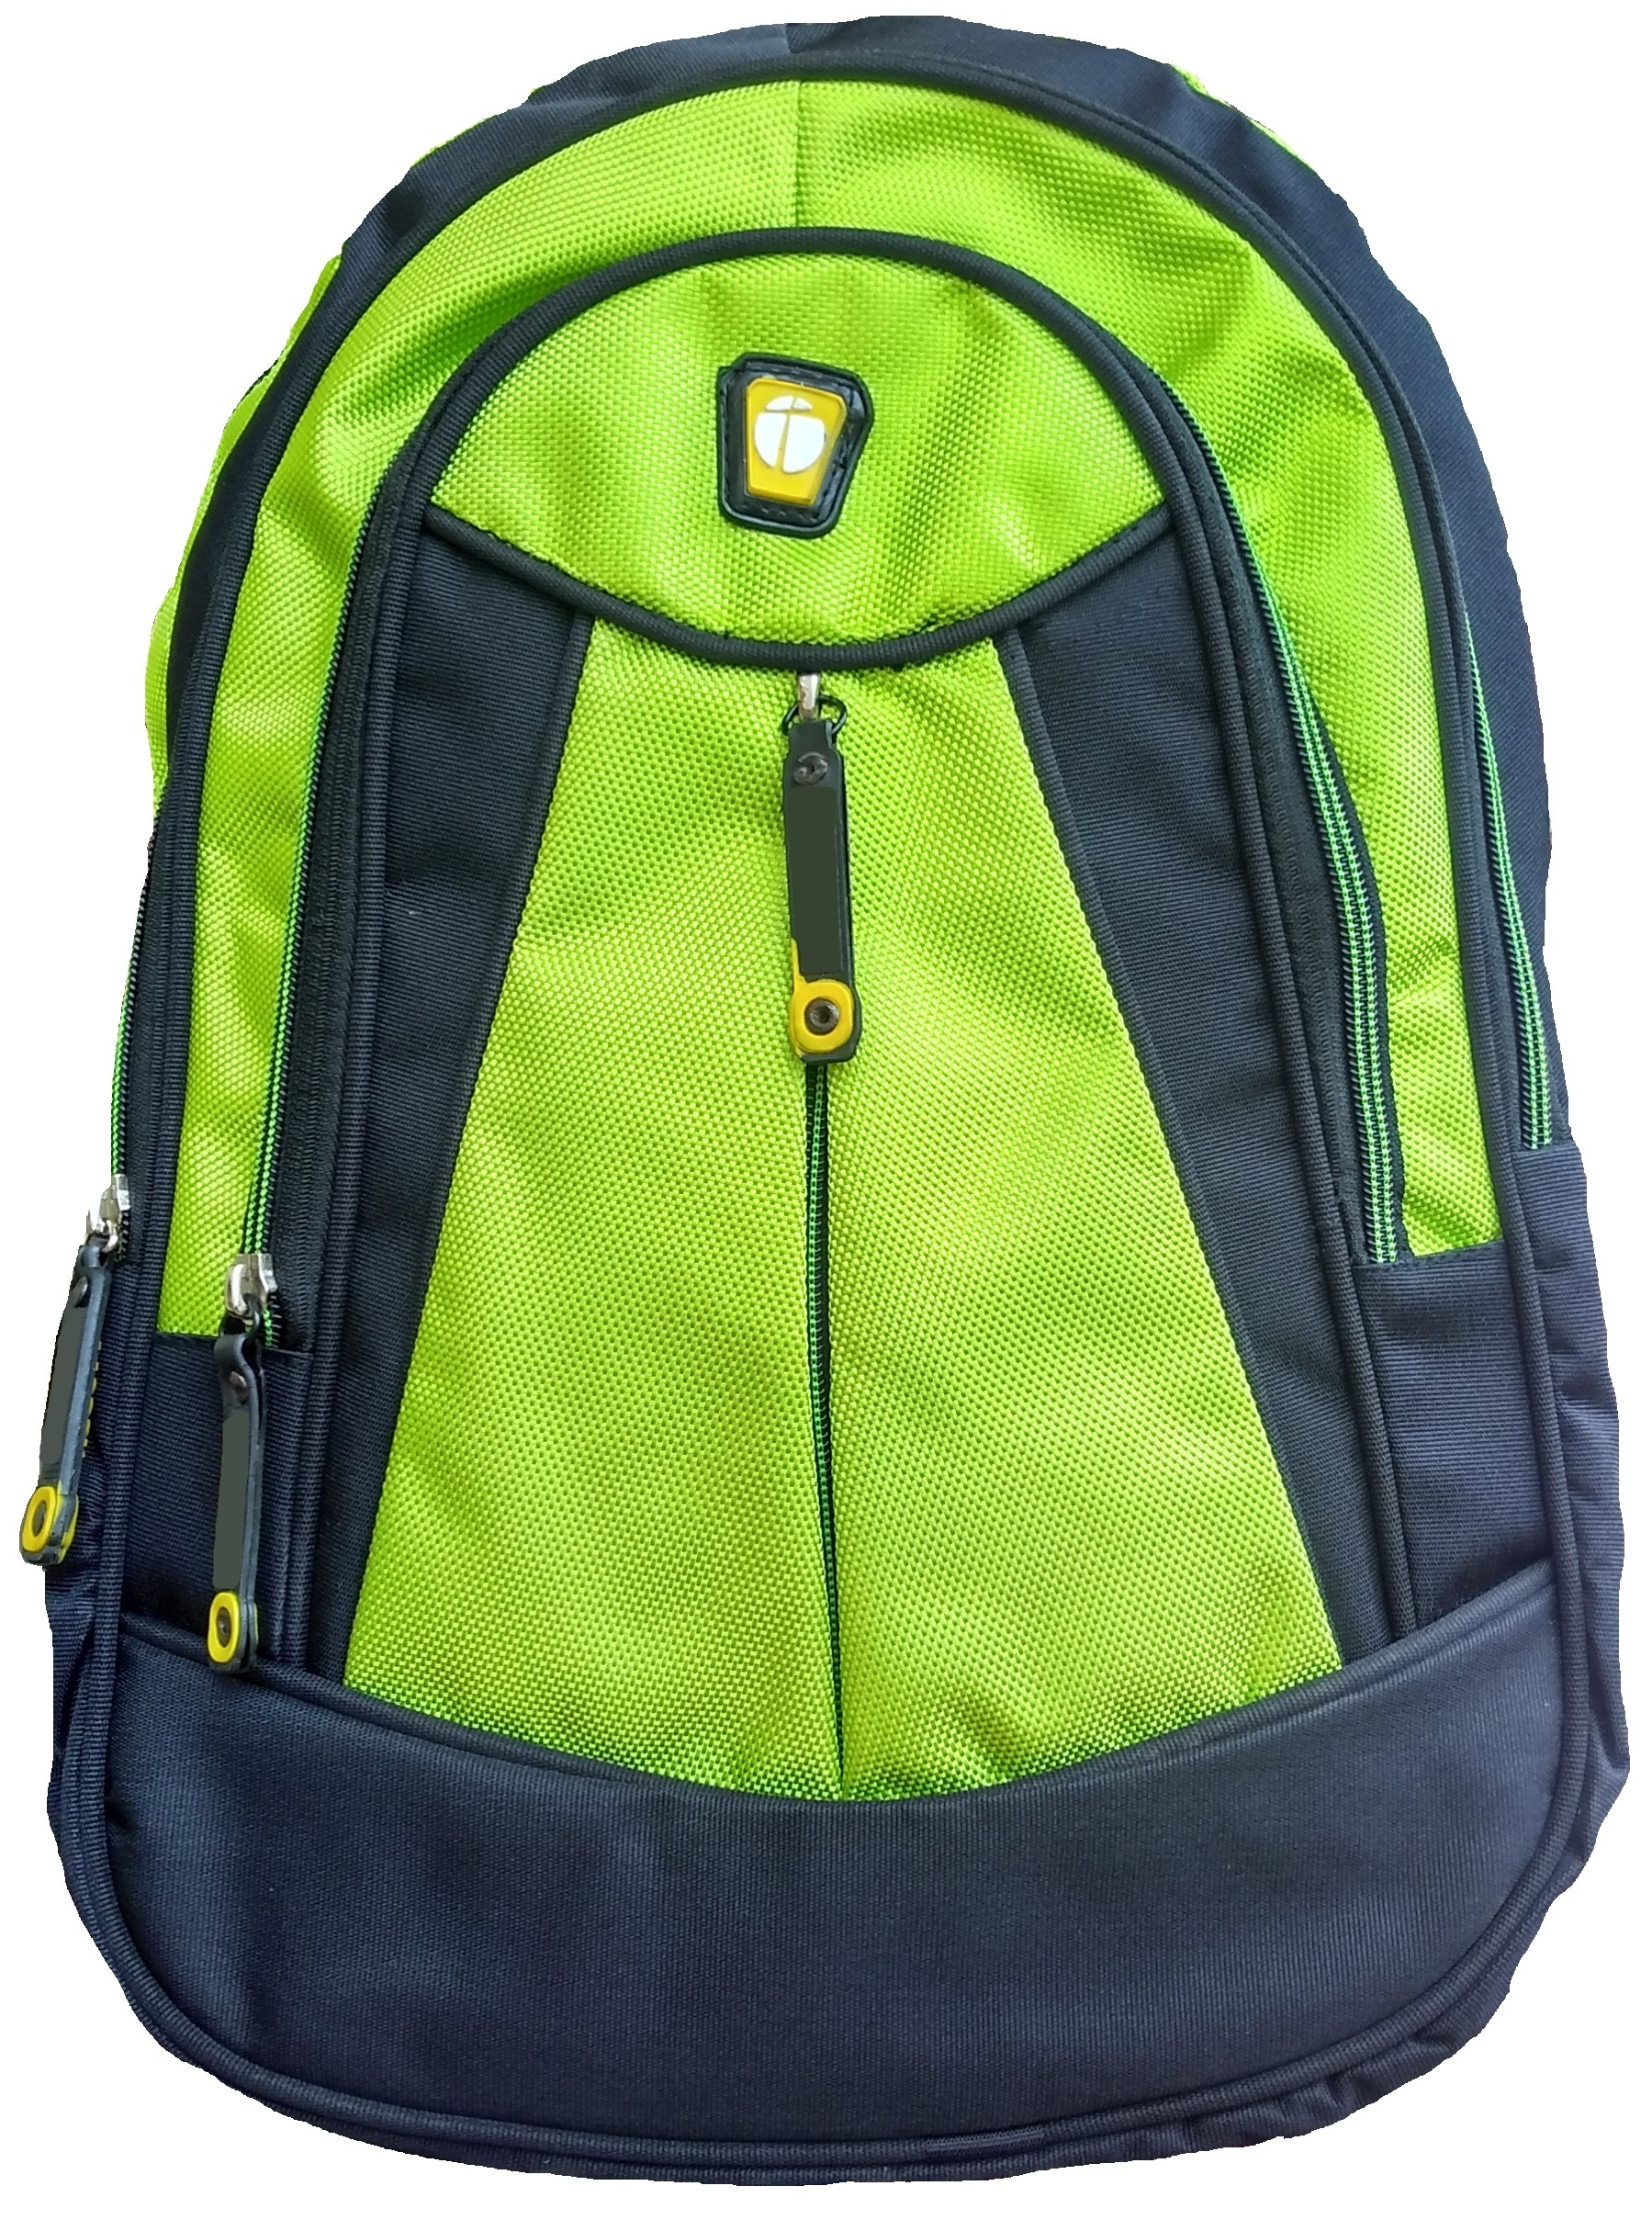 School Bag, College Bag, Bags, Travel Bag, Gym Bag, Boys Bag, Girls Bag, Coaching Bag, Waterproof bag, Backpack